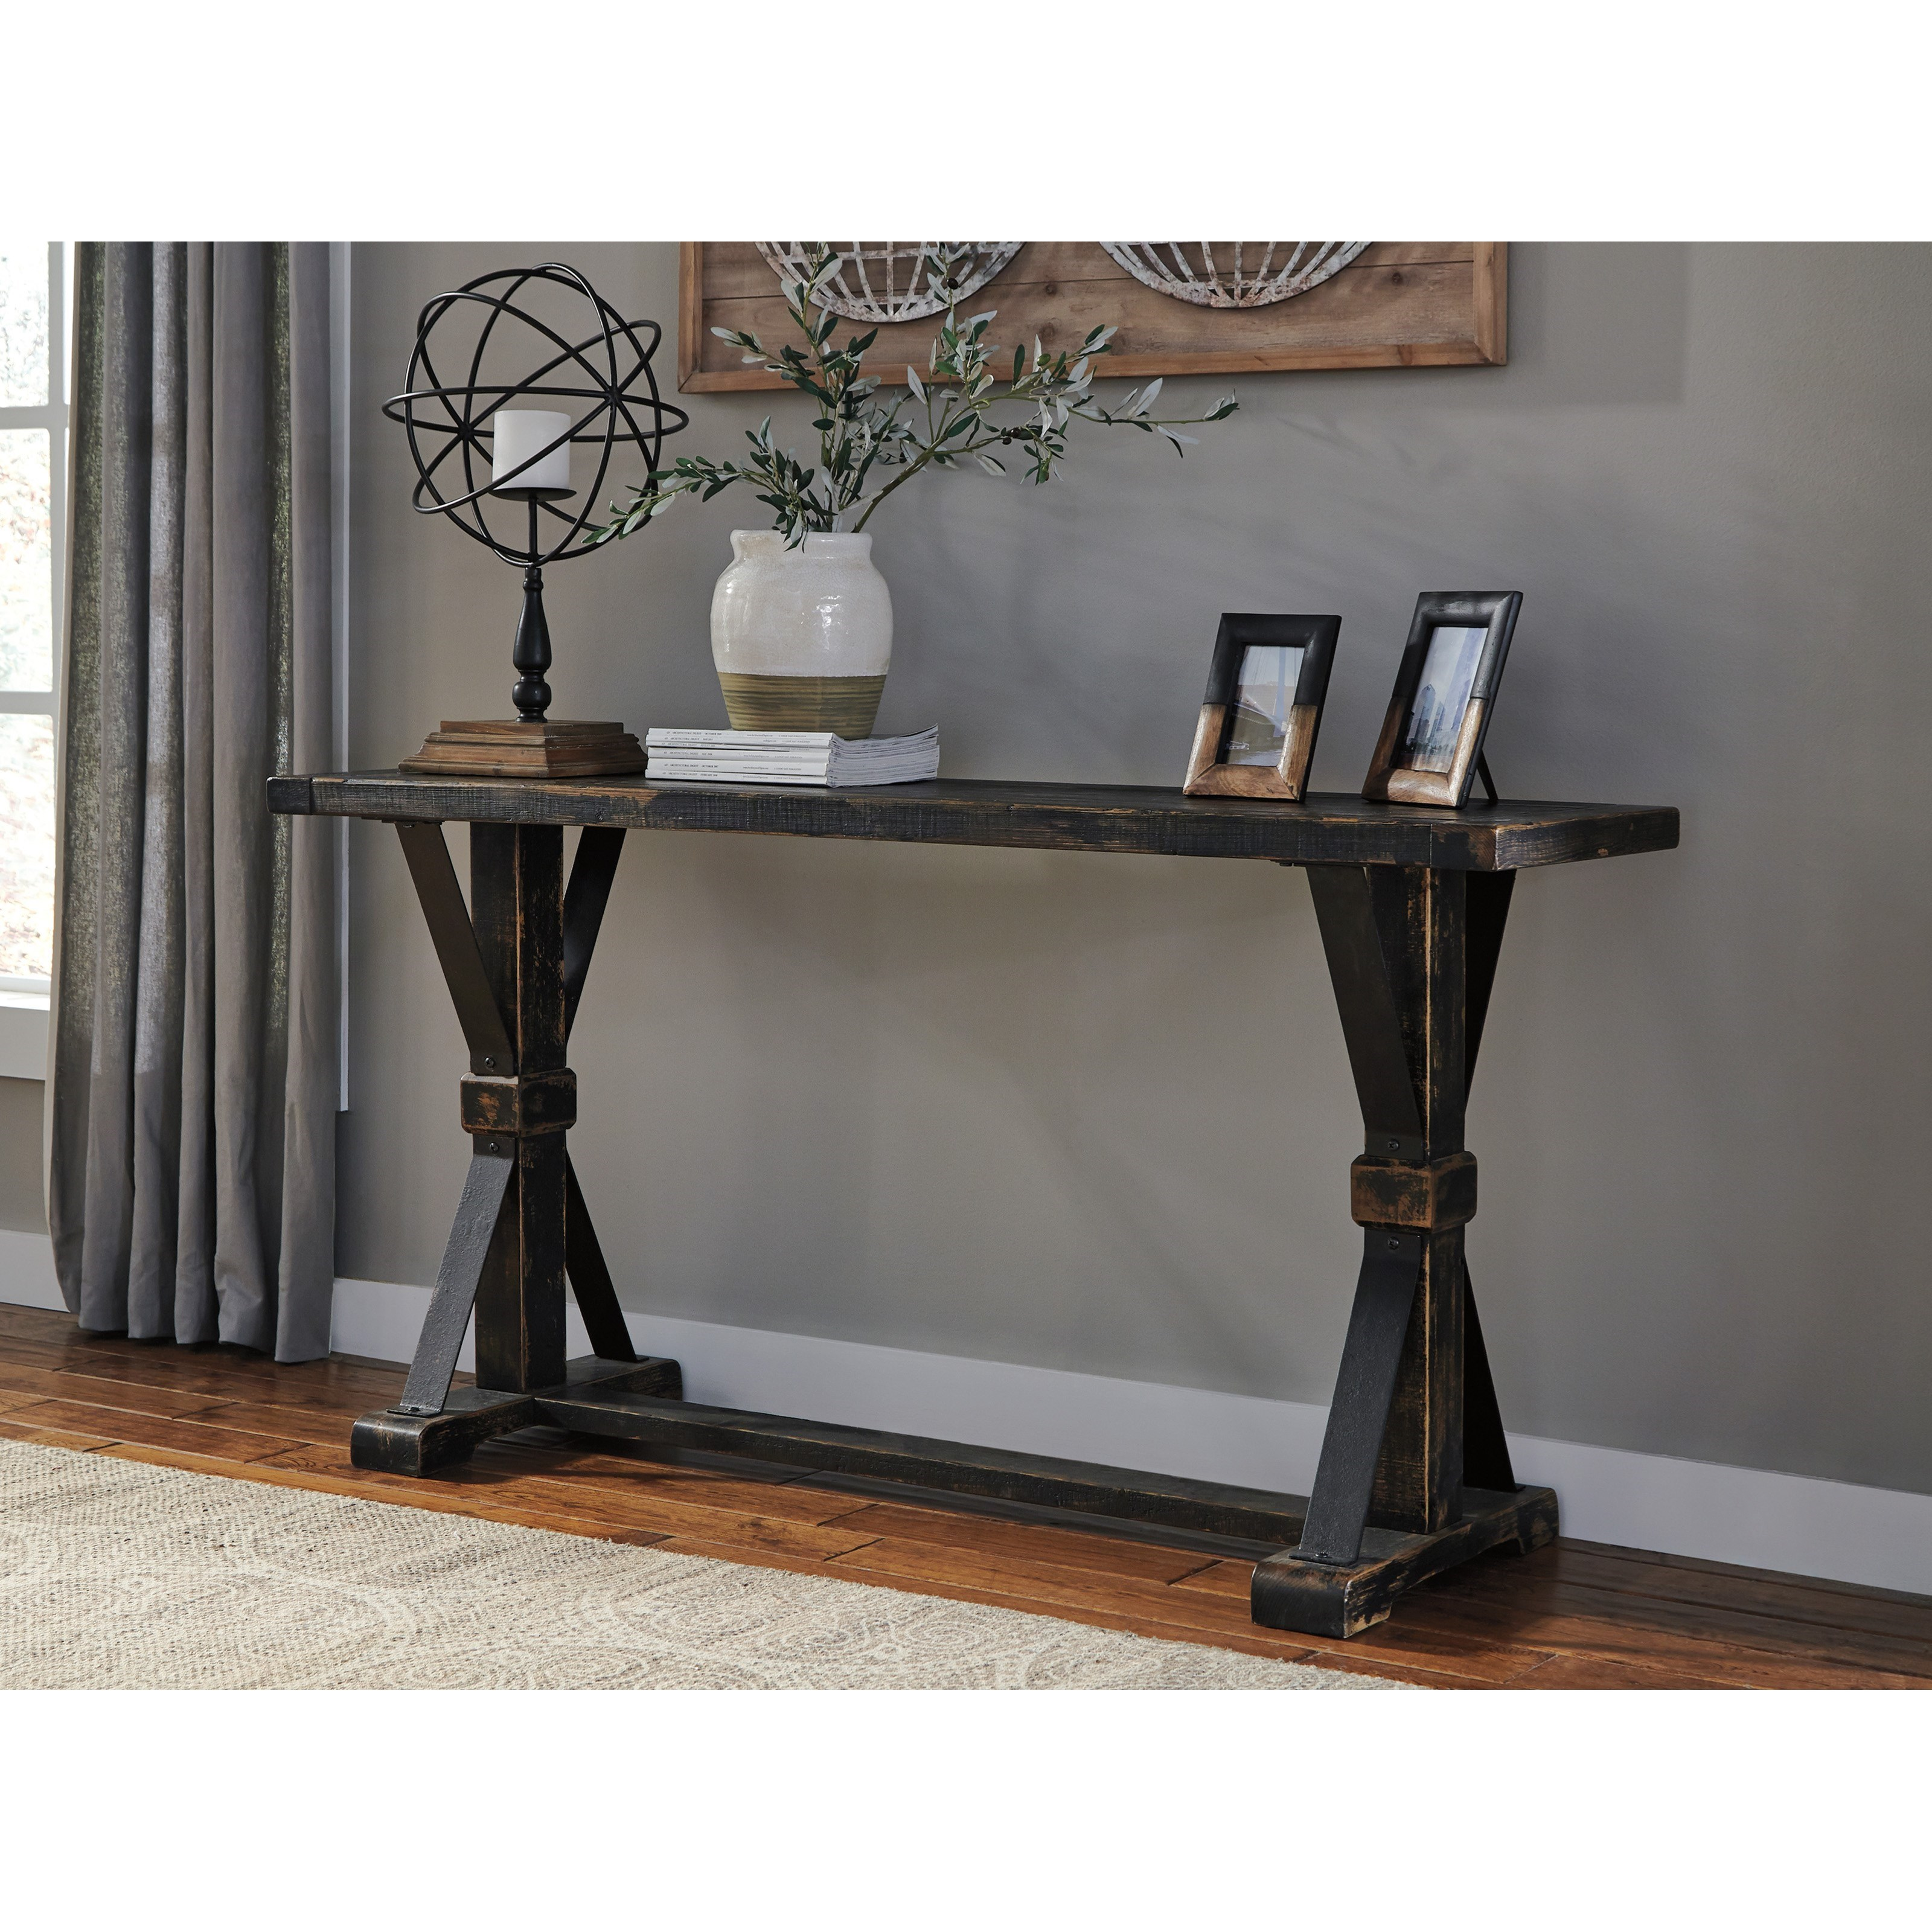 Signature design by ashley beckendorf t096 4 rustic for Sofa table vs console table